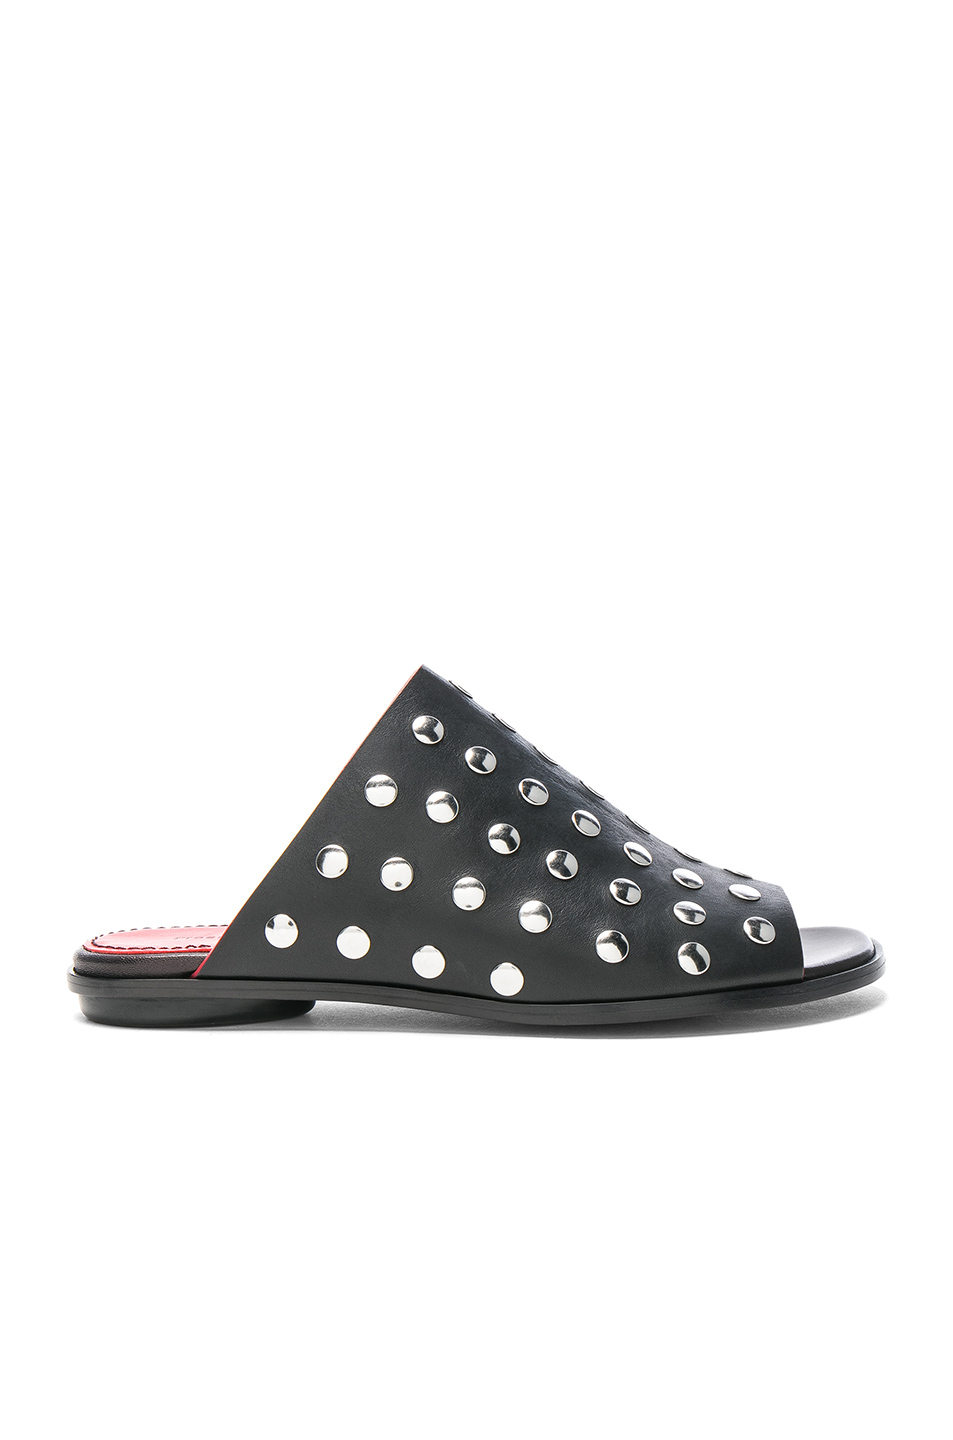 Proenza Schouler Studded Leather Sandals in Black